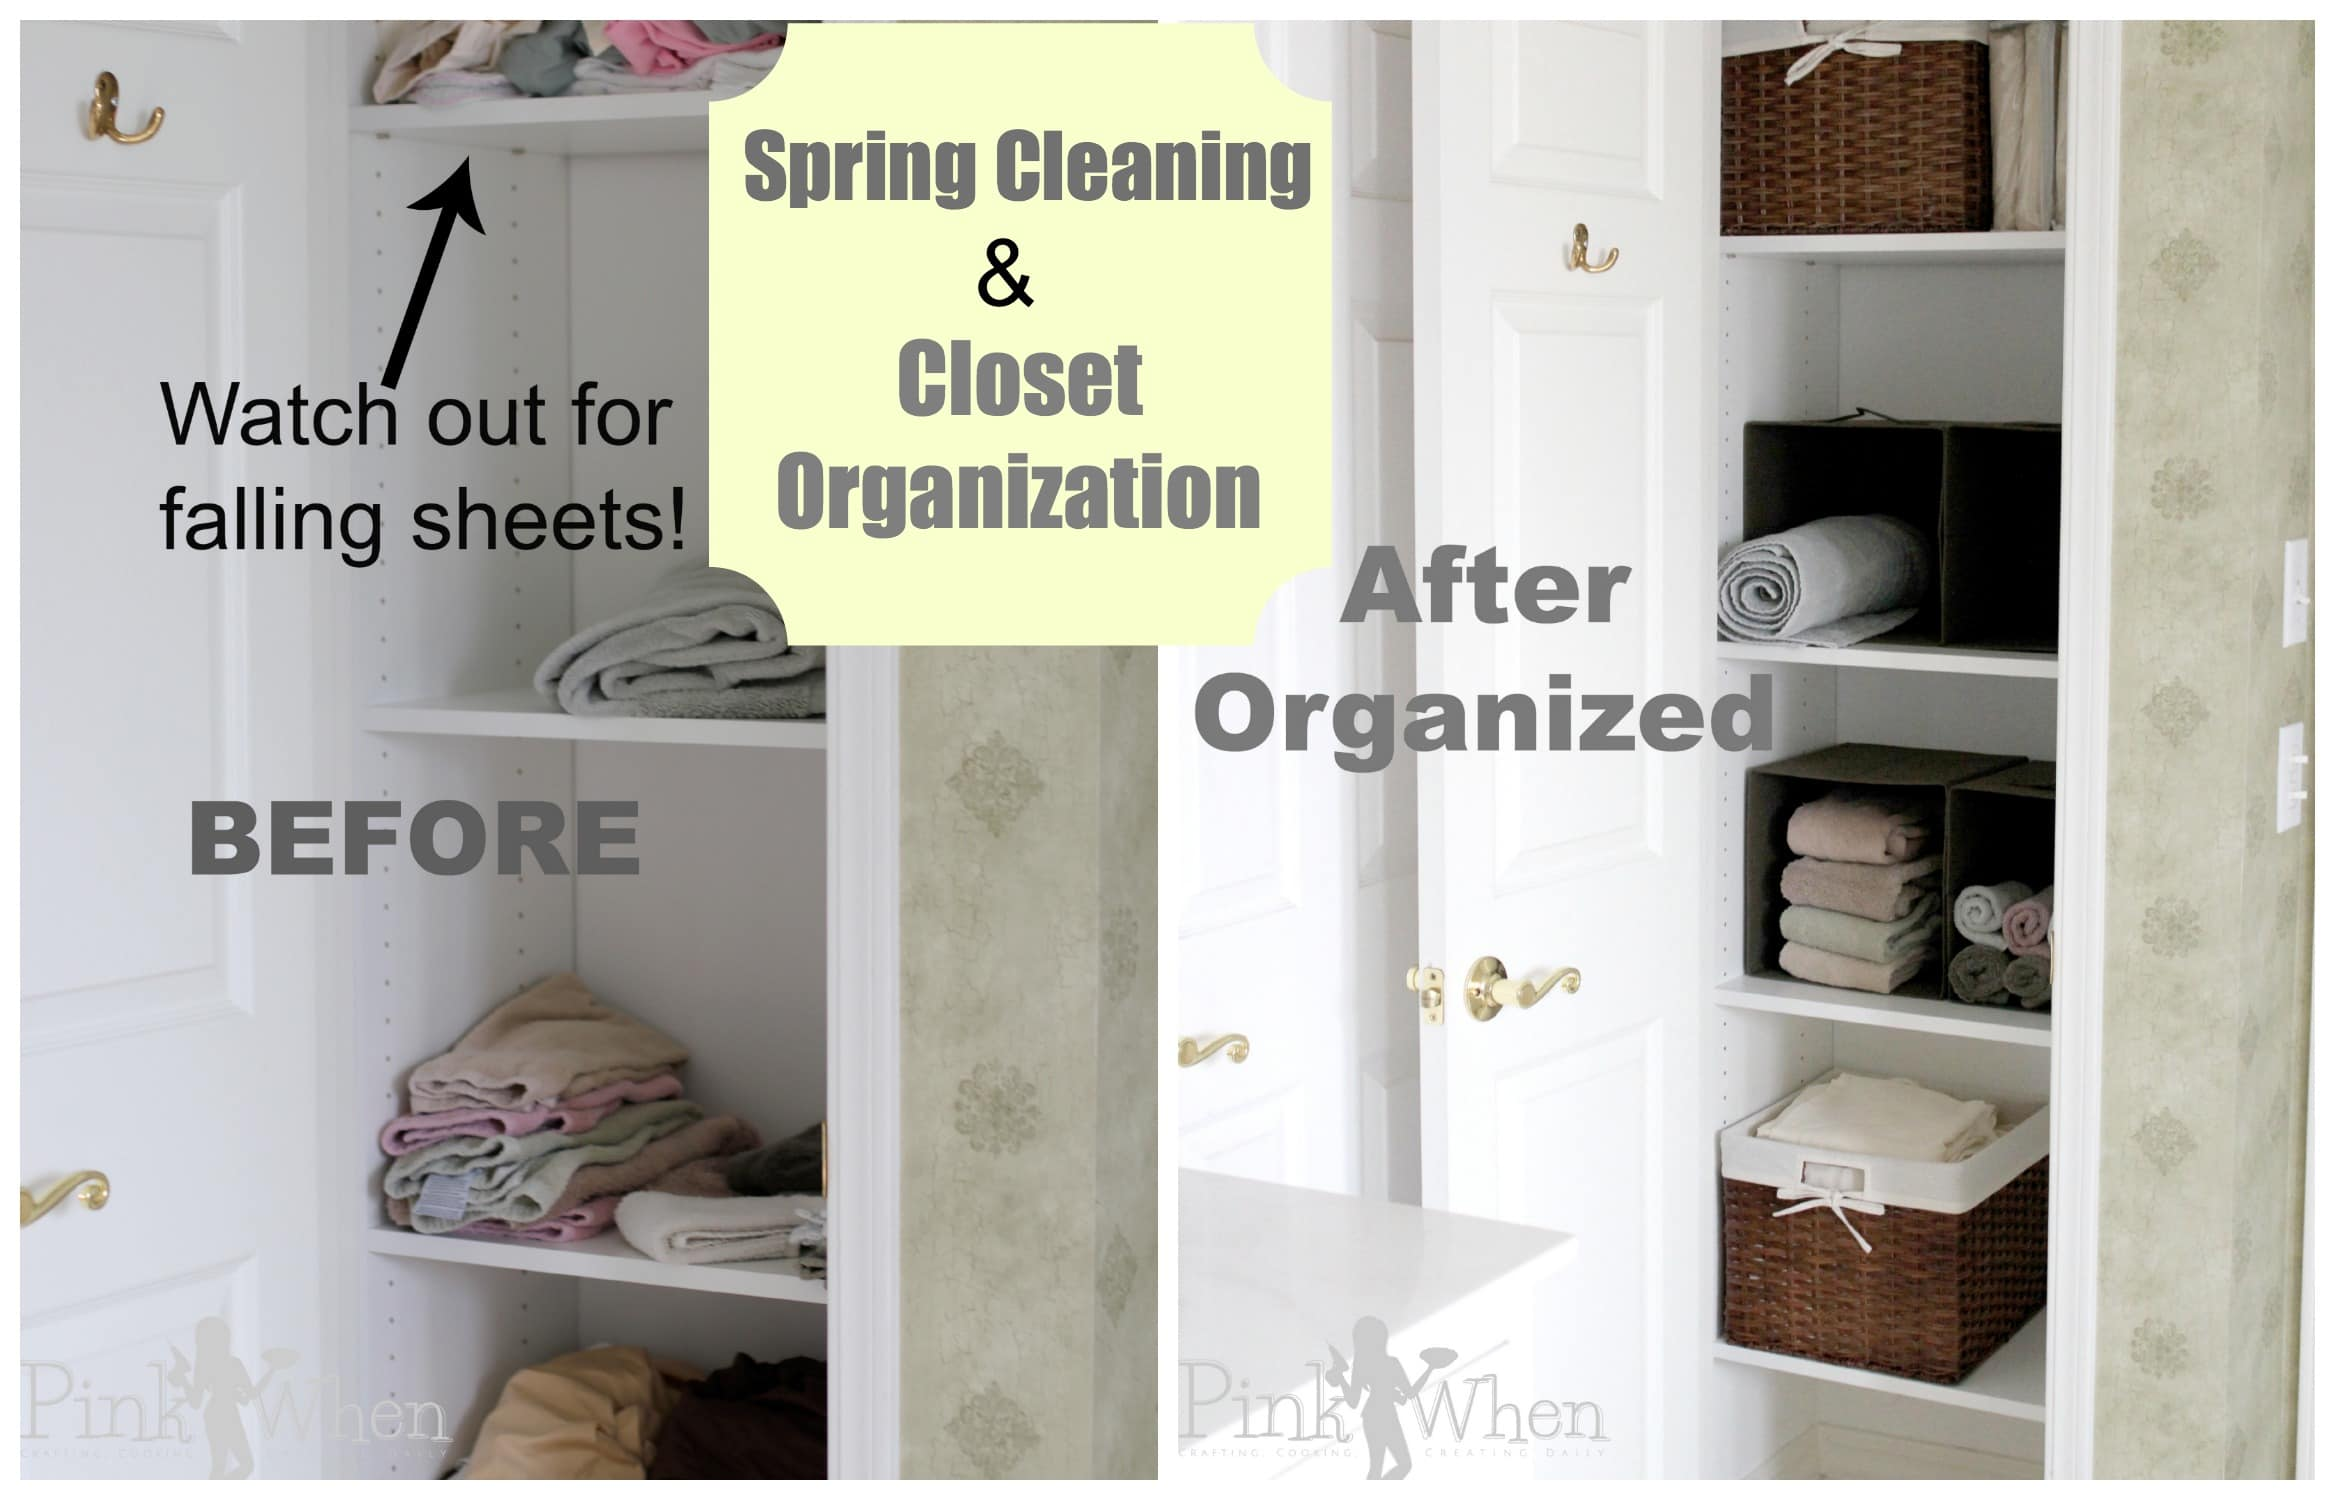 Spring Cleaning and Closet Organization - PinkWhen